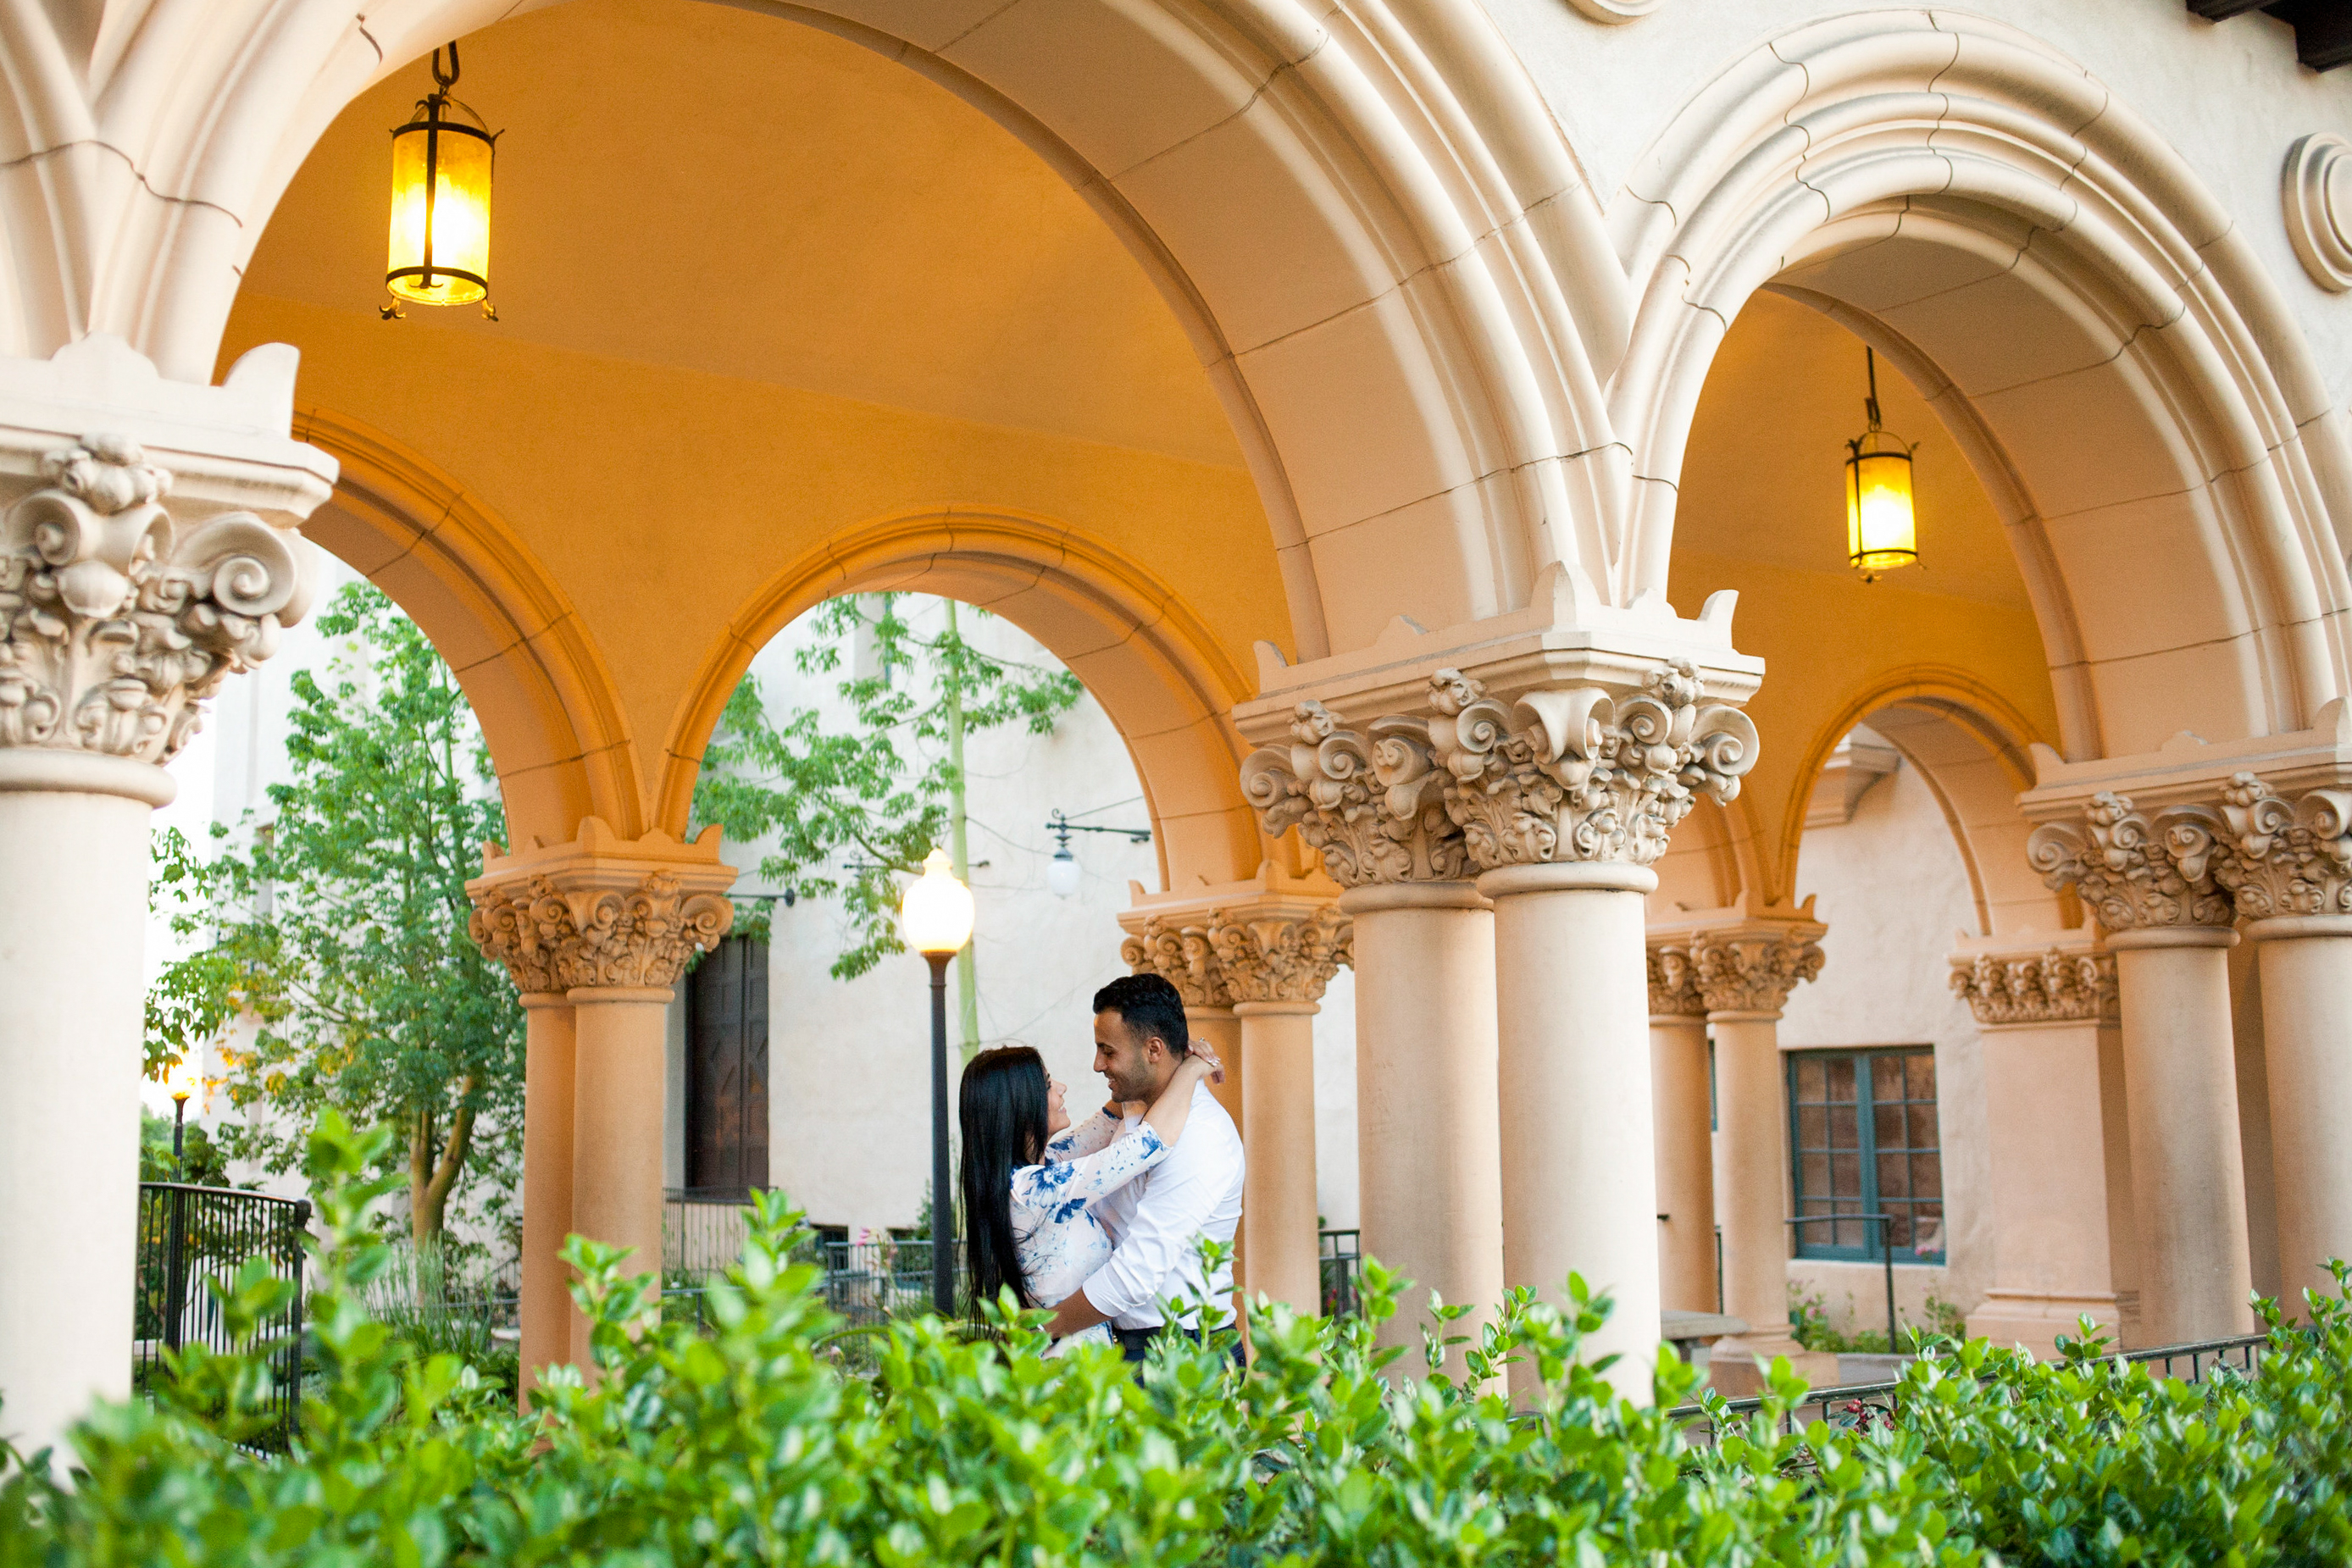 Wedding Photography Prices In California: Balboa Park Engagement Photography